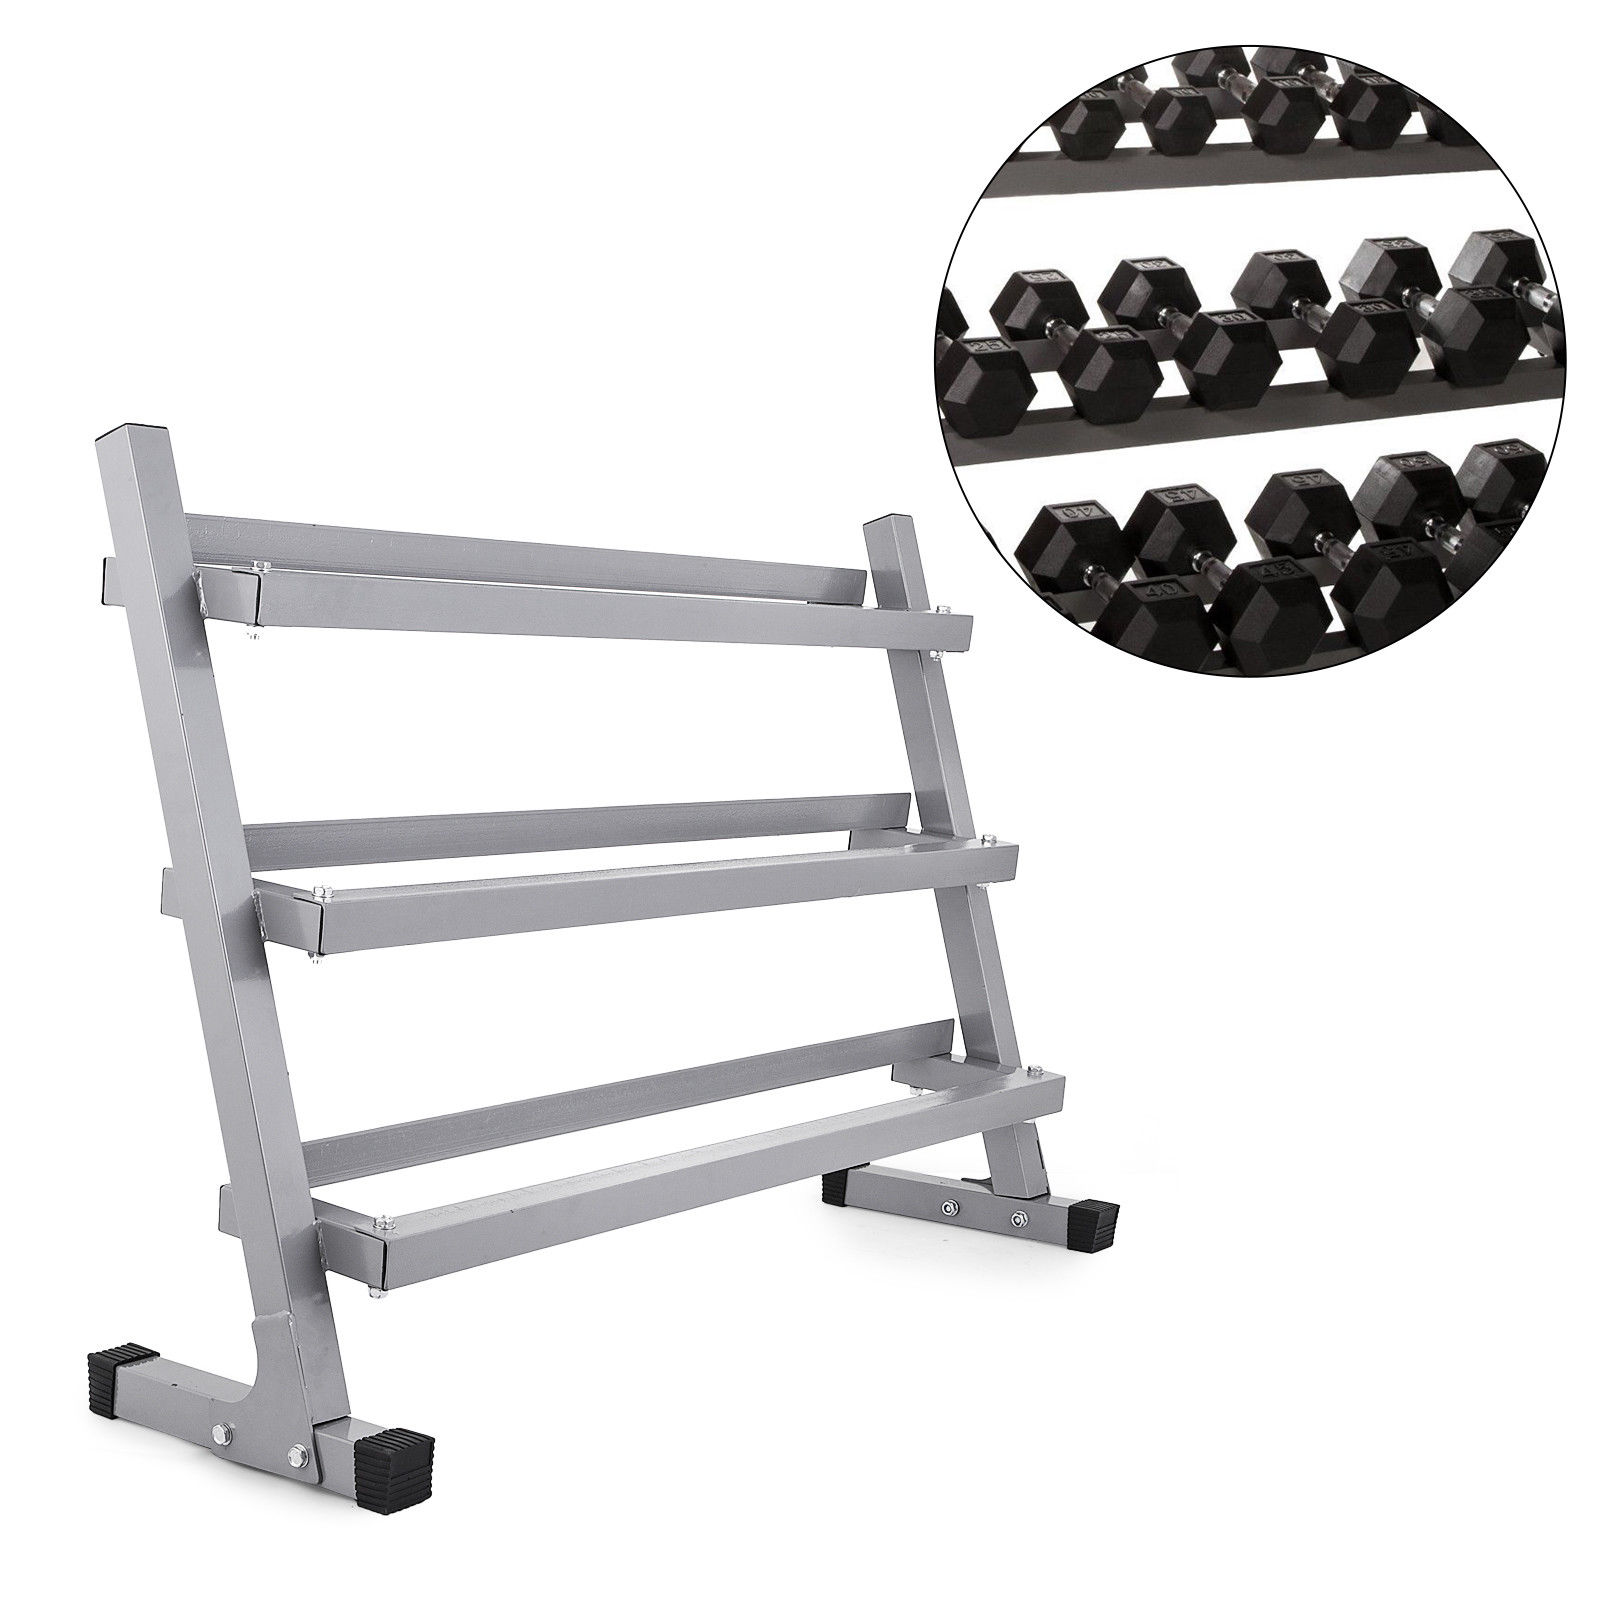 BestEquip 3 Tier Dumbbell Rack 660LBS Multilevel Rack Loaded Dumbbells Weight Storage Organizer Dumbbell Sets for Home Gym and Commercial Use